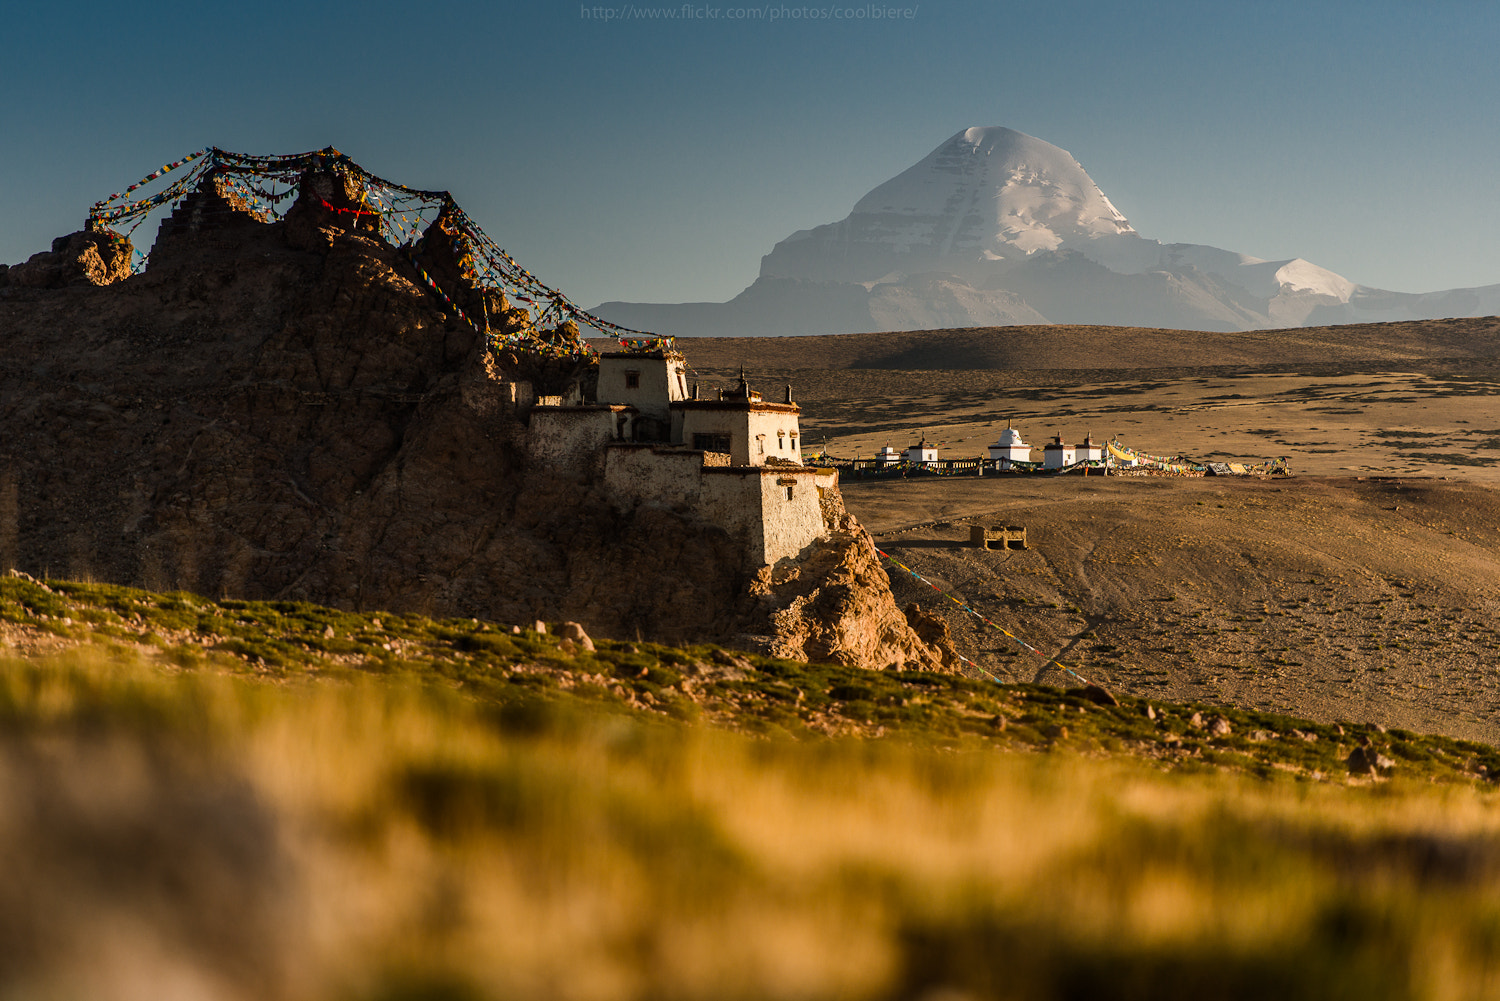 Photograph Mt. Kailash by Coolbiere. A. on 500px